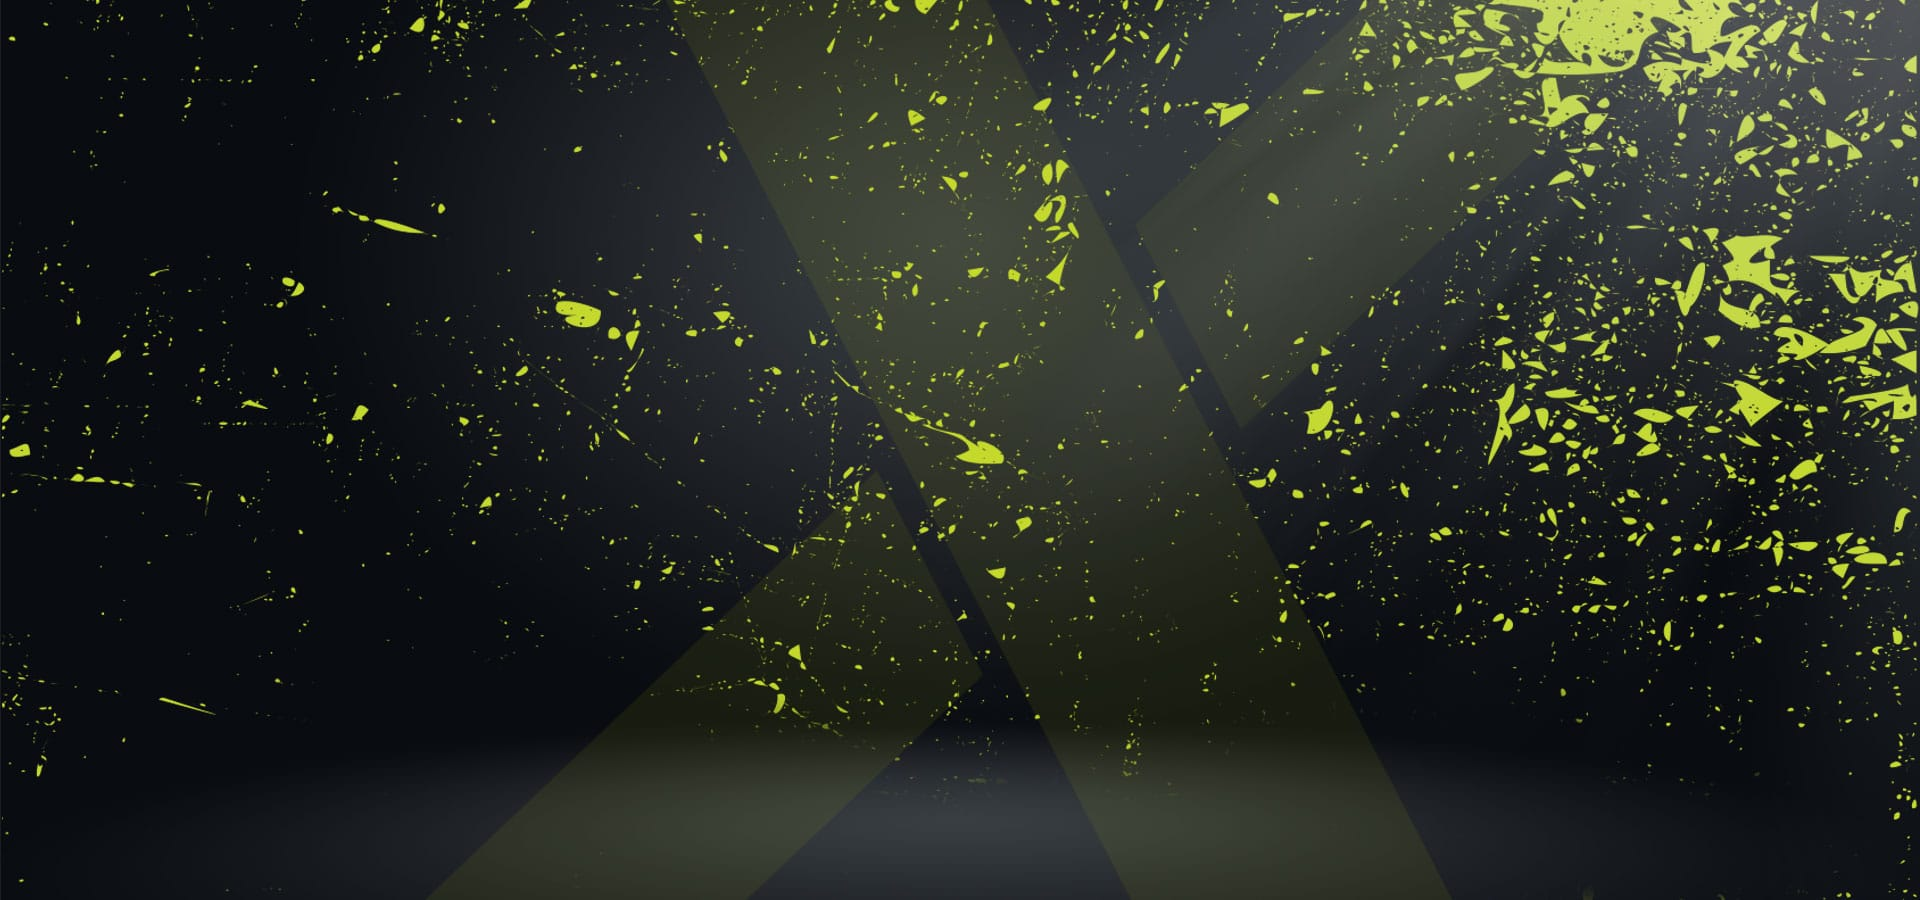 BZR-X Driving Lights Background